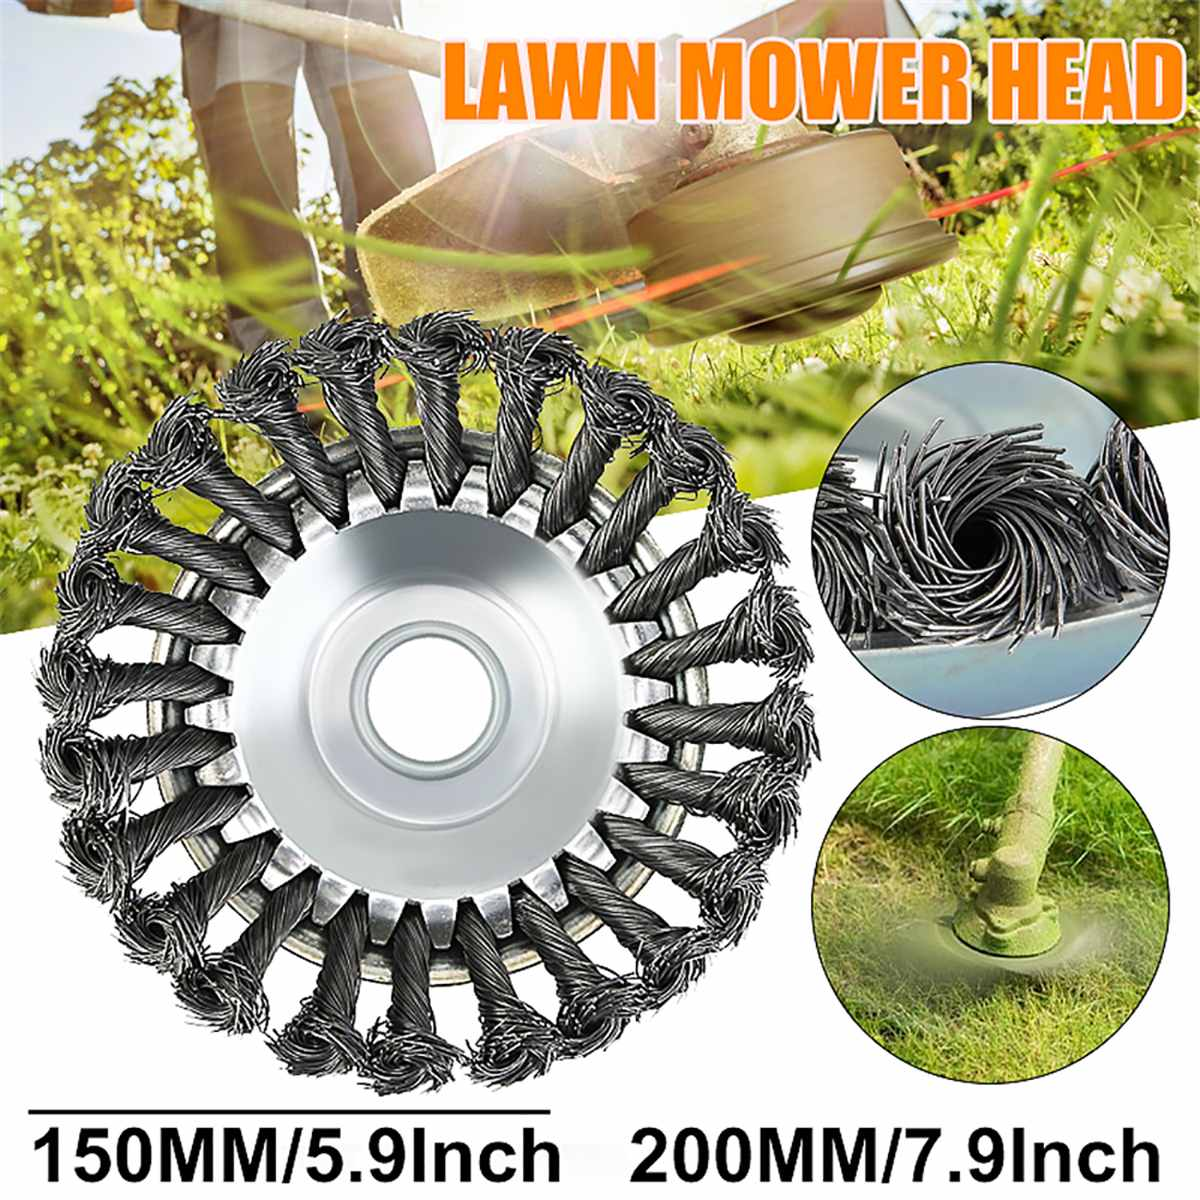 Garden Tool Steel Wire Wheel Brush High Carbon Steel 6/8 Inch 25mm Trimmer Head For Lawnmower Landscaping Rotary Weed Brush